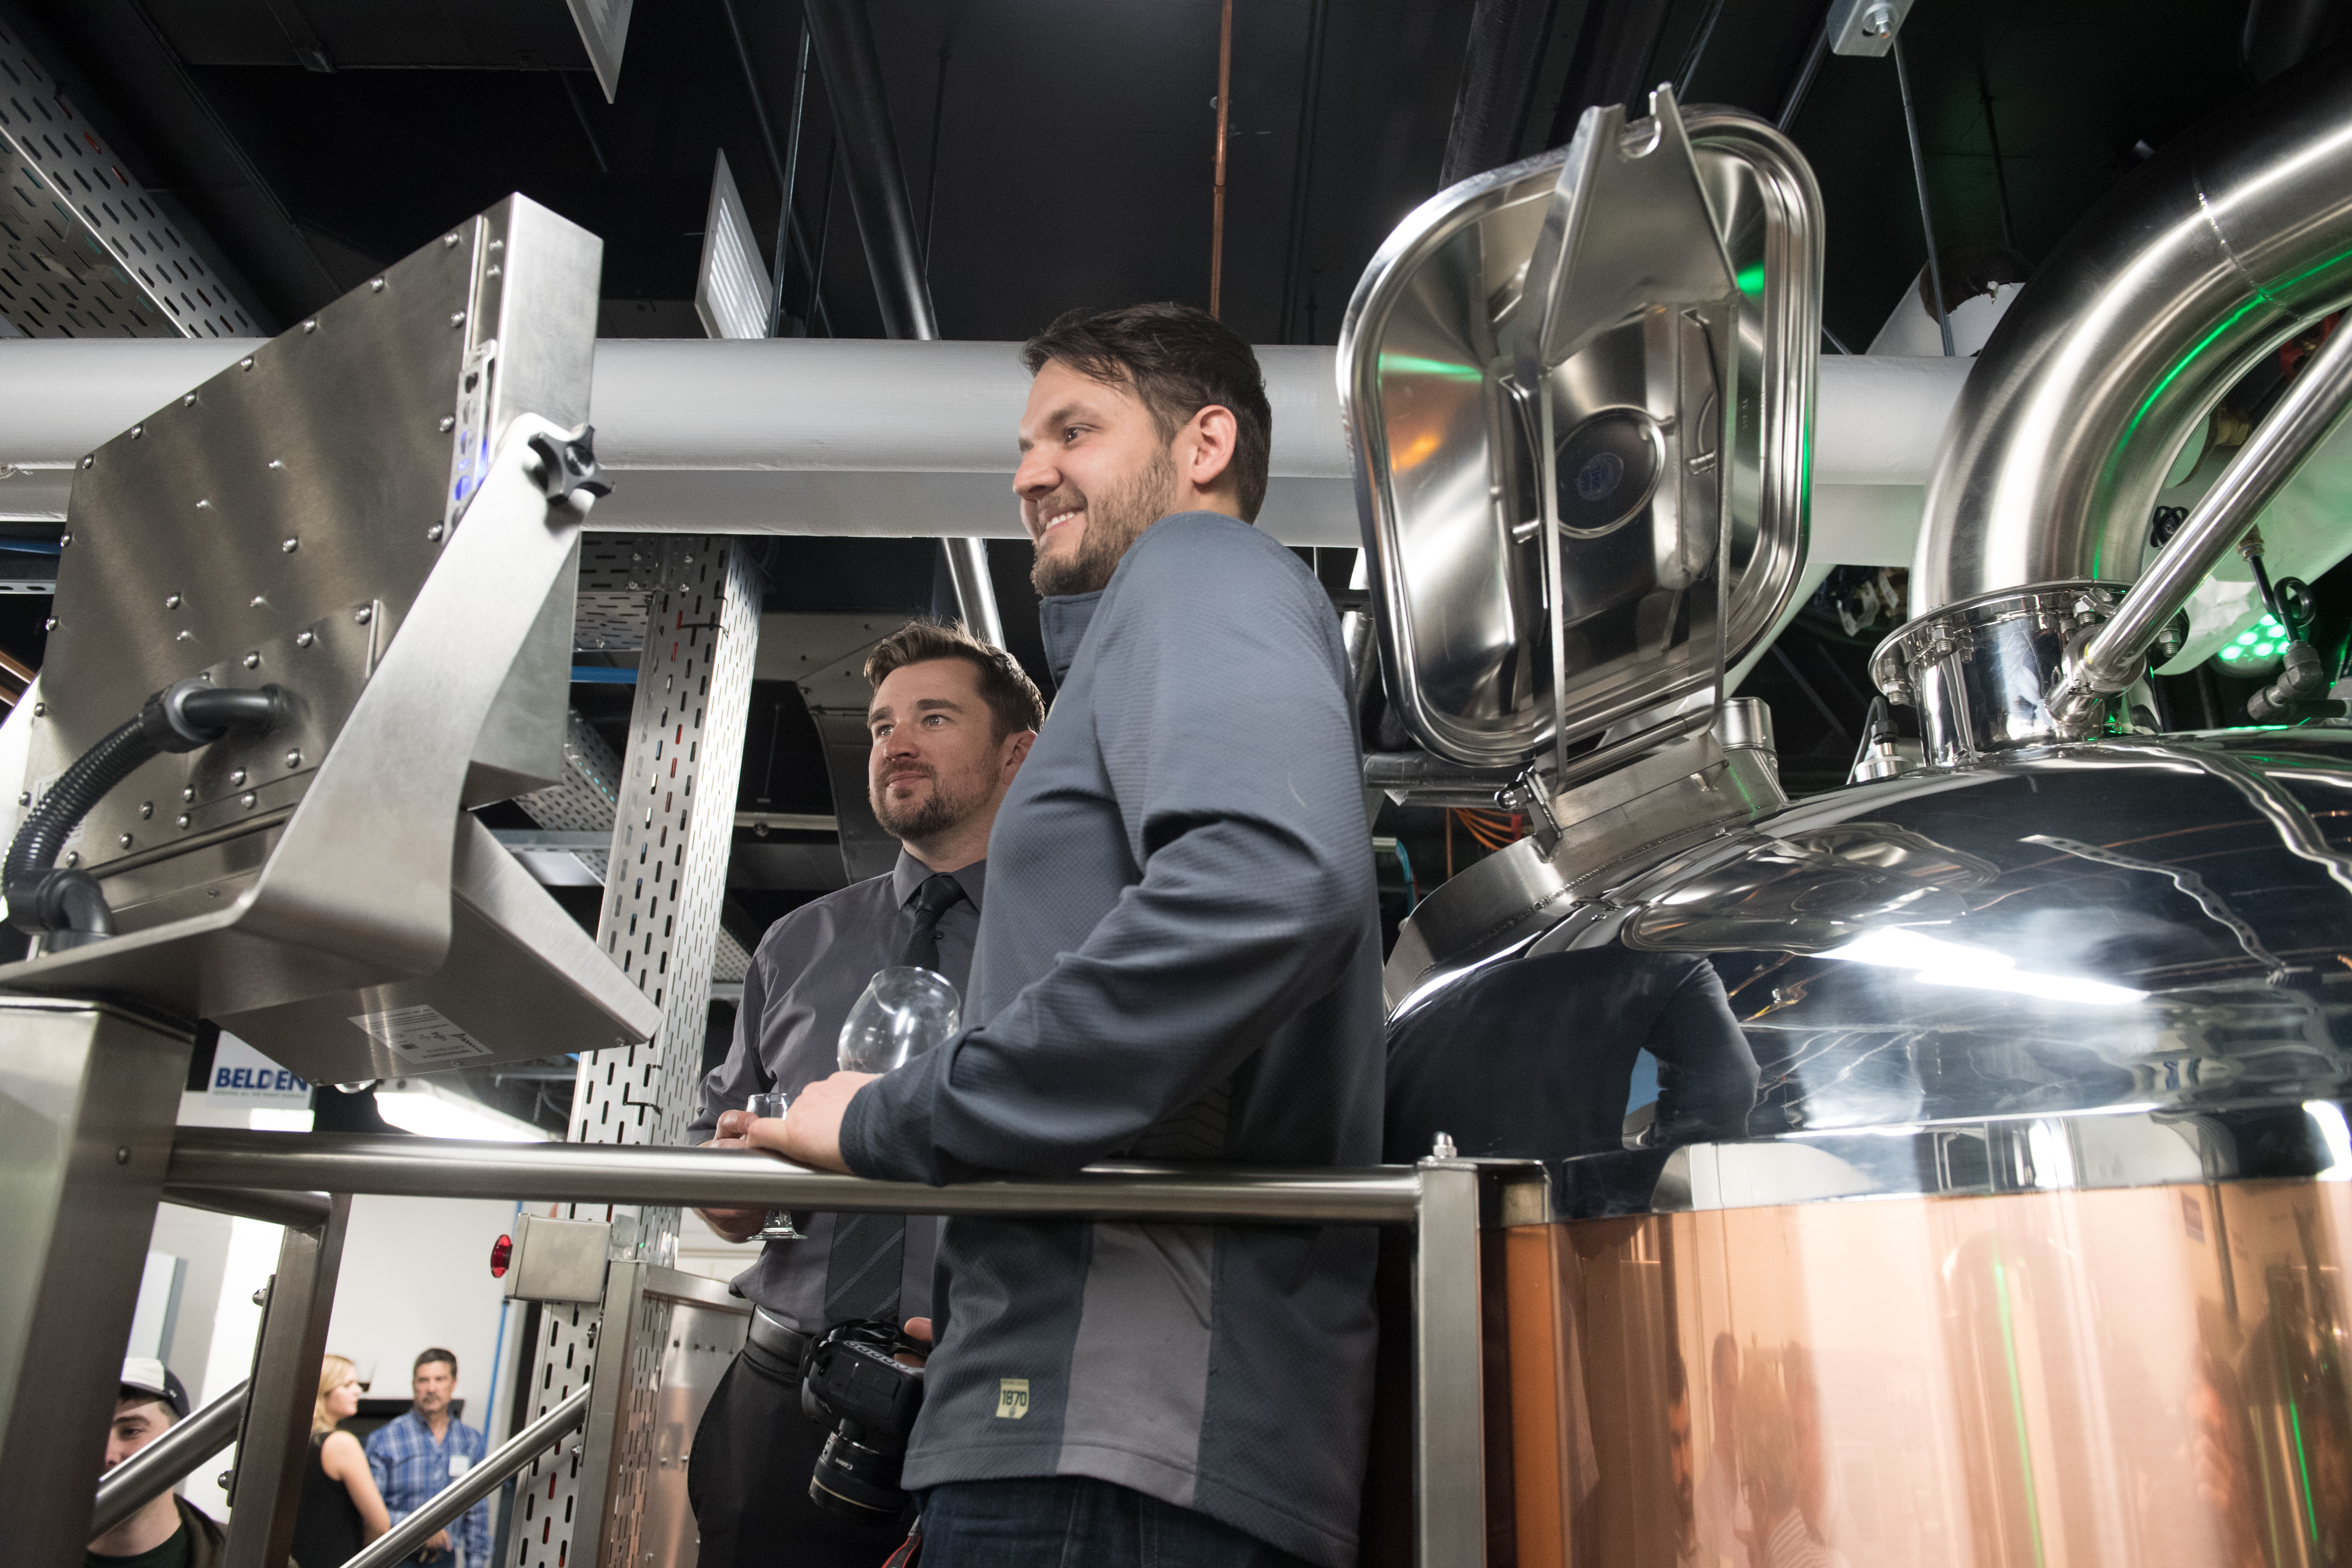 Colorado State University Launches Hands-on Brewing Lab with Help from Malisko Engineering, Rockwell Automation